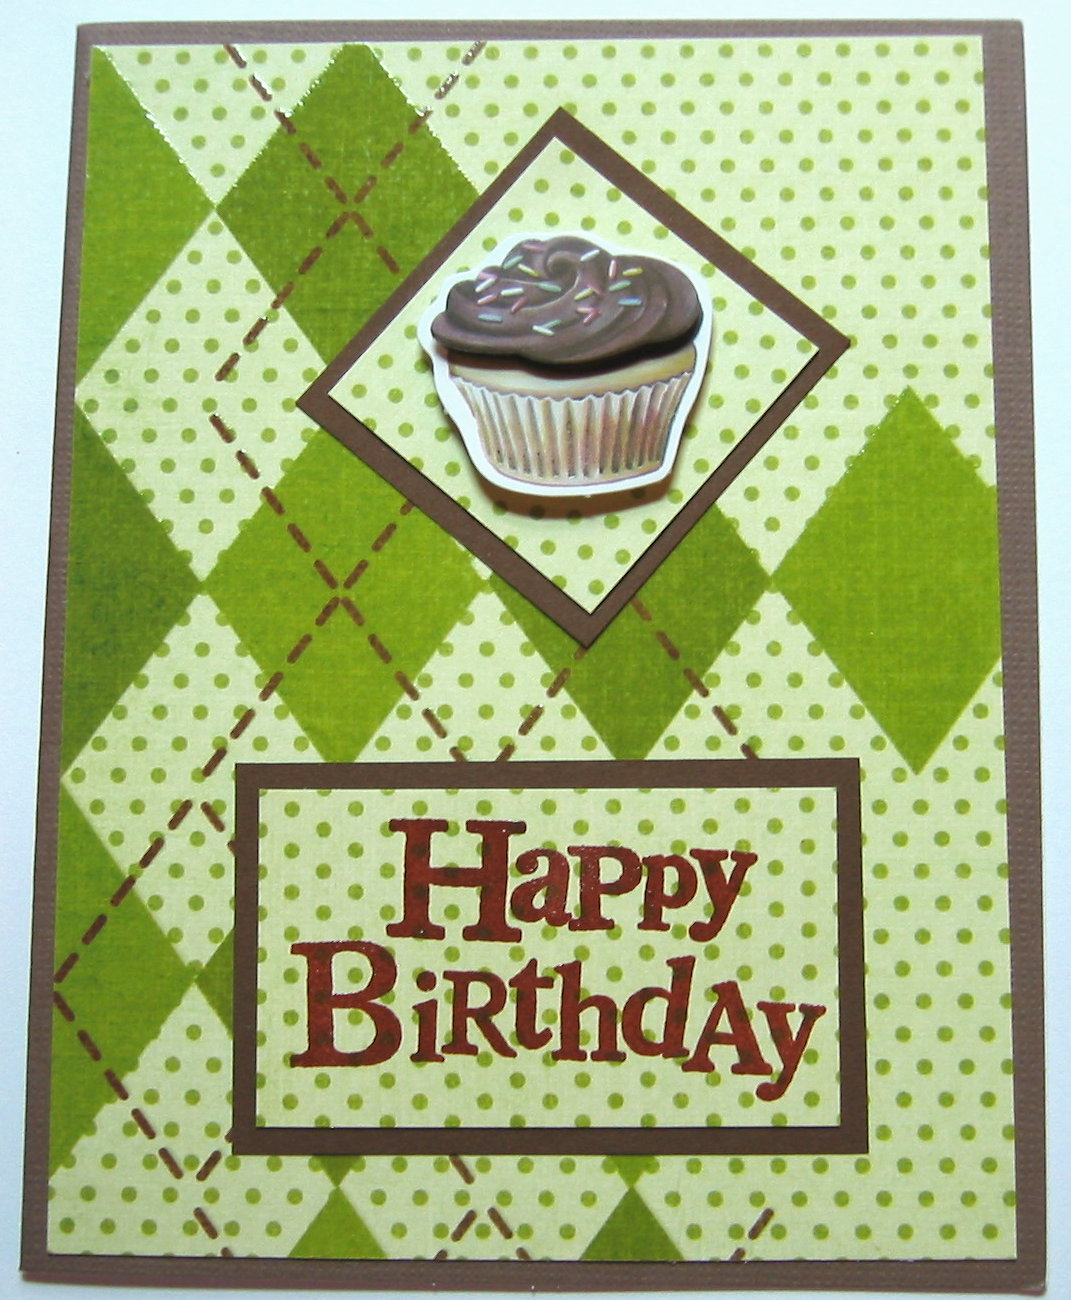 carol hartery's creations quick and easy birthday cards